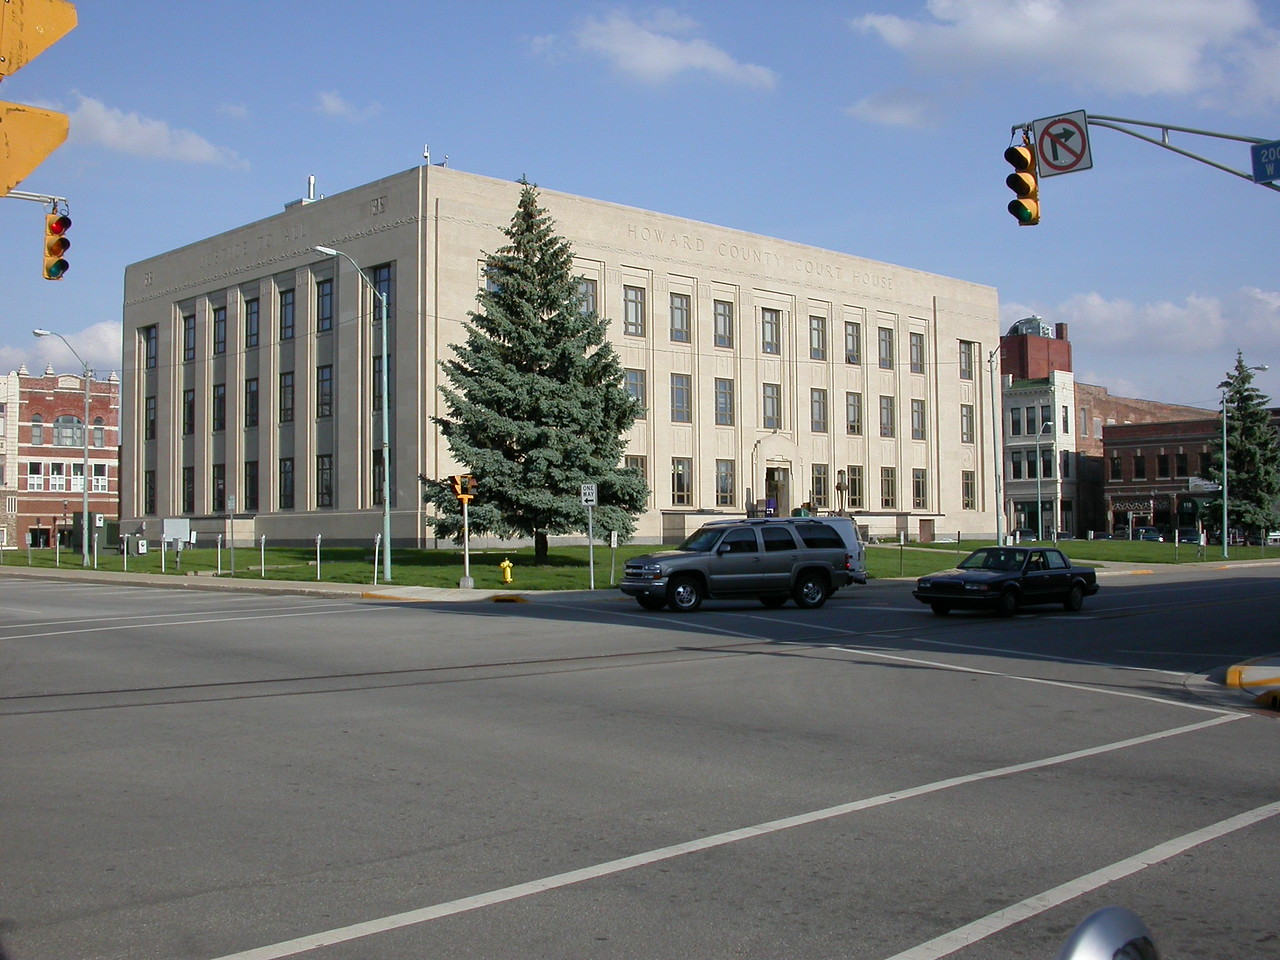 Howard County Courthouse, Kokomo, Indiana, May 2004.